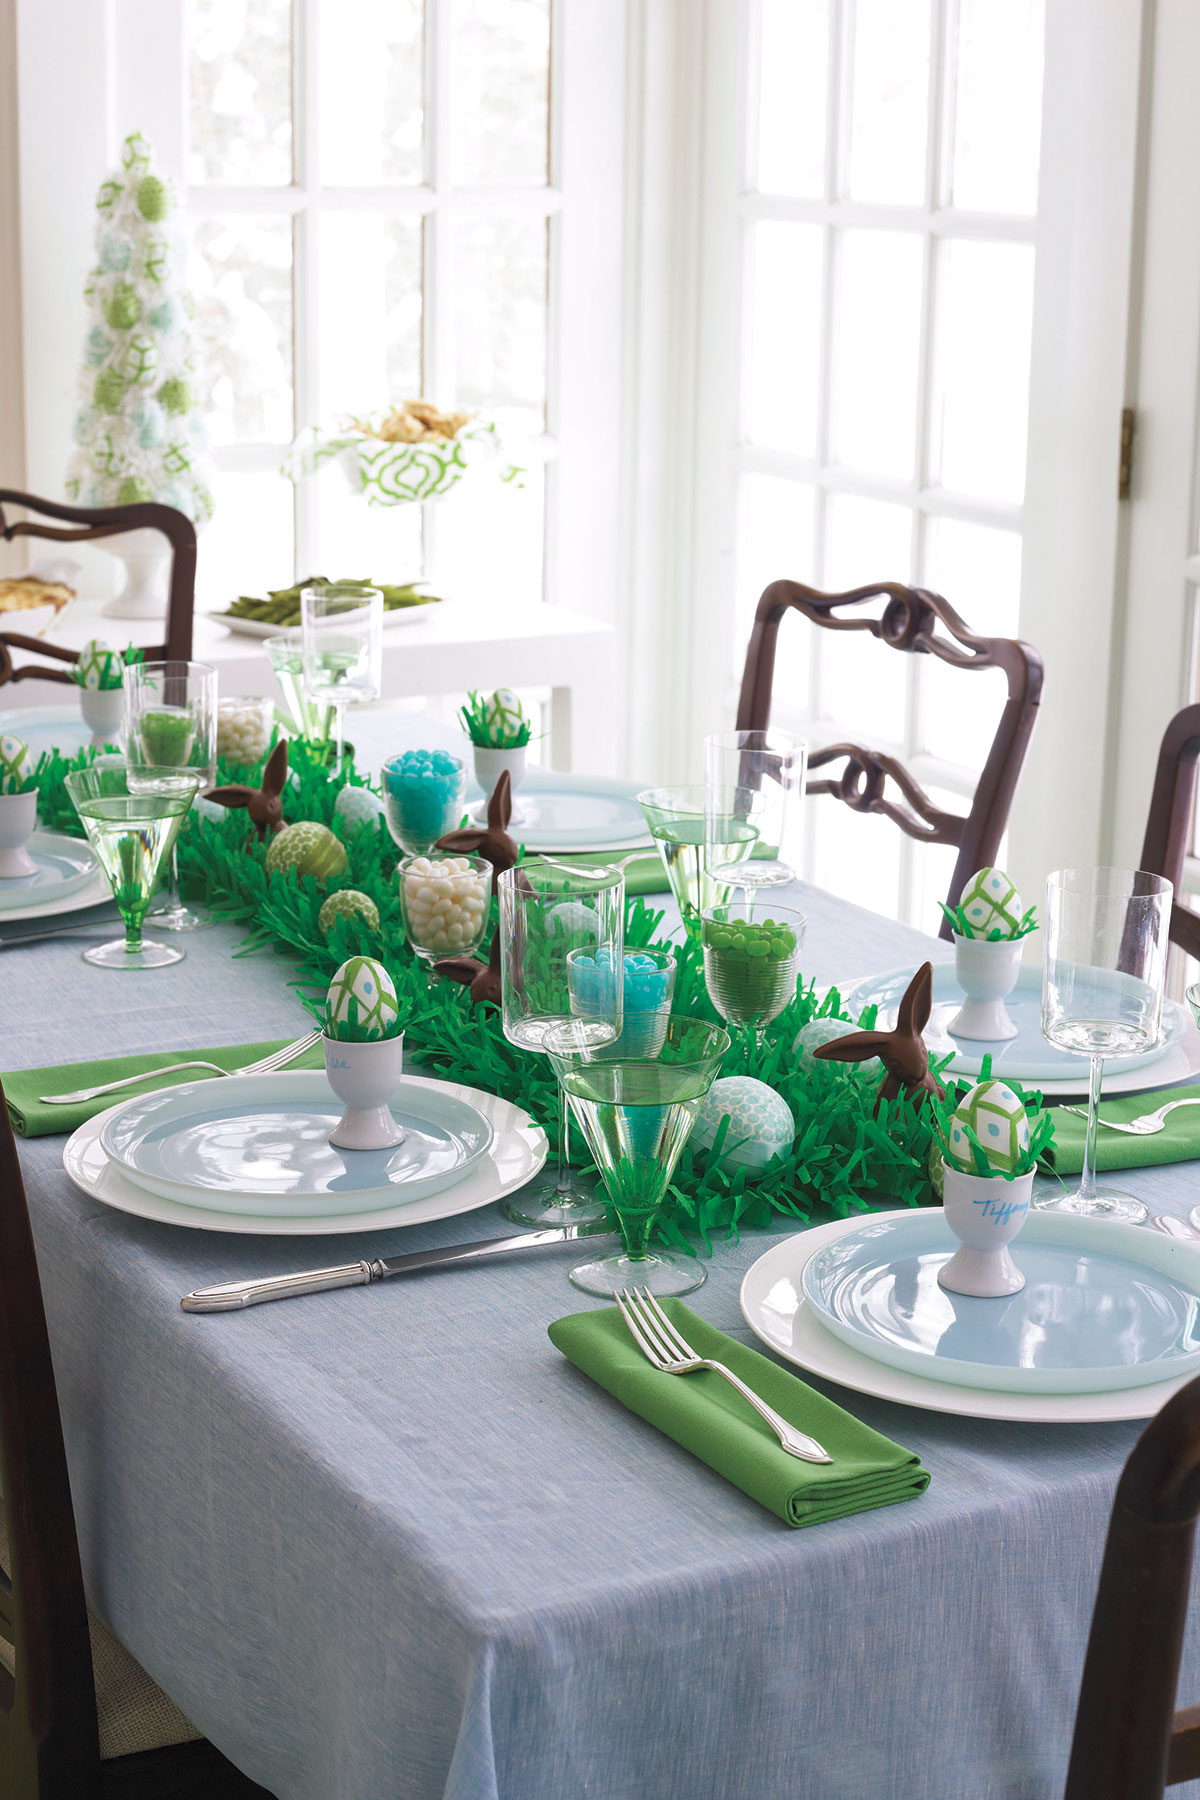 30 Easter Party Ideas Decorations Food and Games for  : 1485978664 wd0411 easter 005 from www.countryliving.com size 1200 x 1800 jpeg 346kB